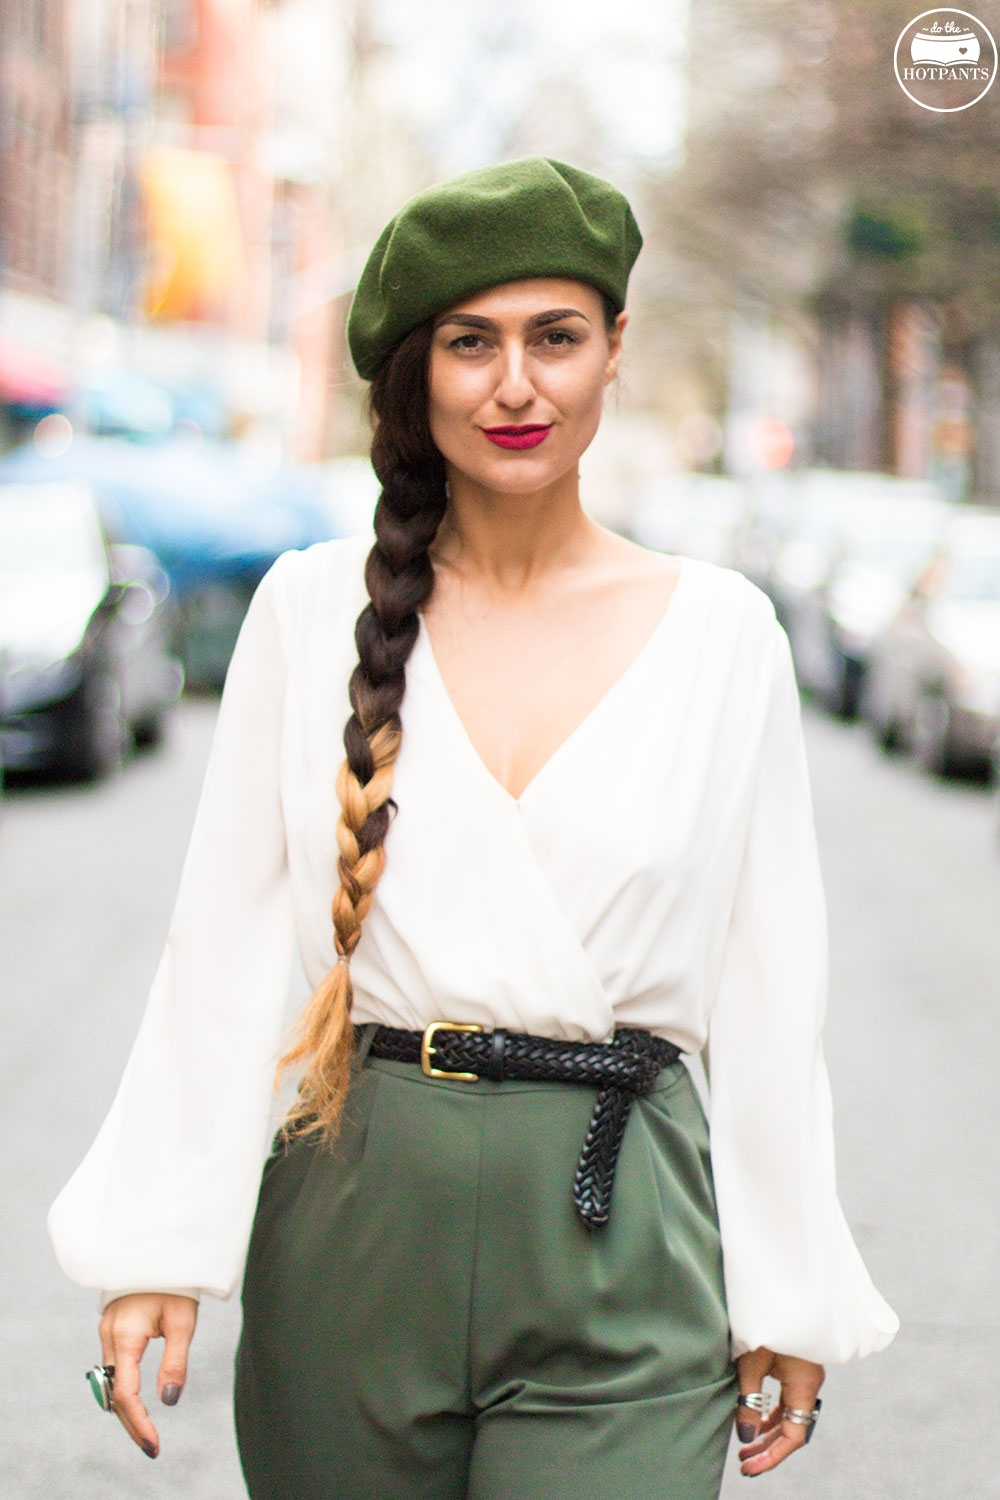 Long Hair Side Braid Green Beret Soldier Style